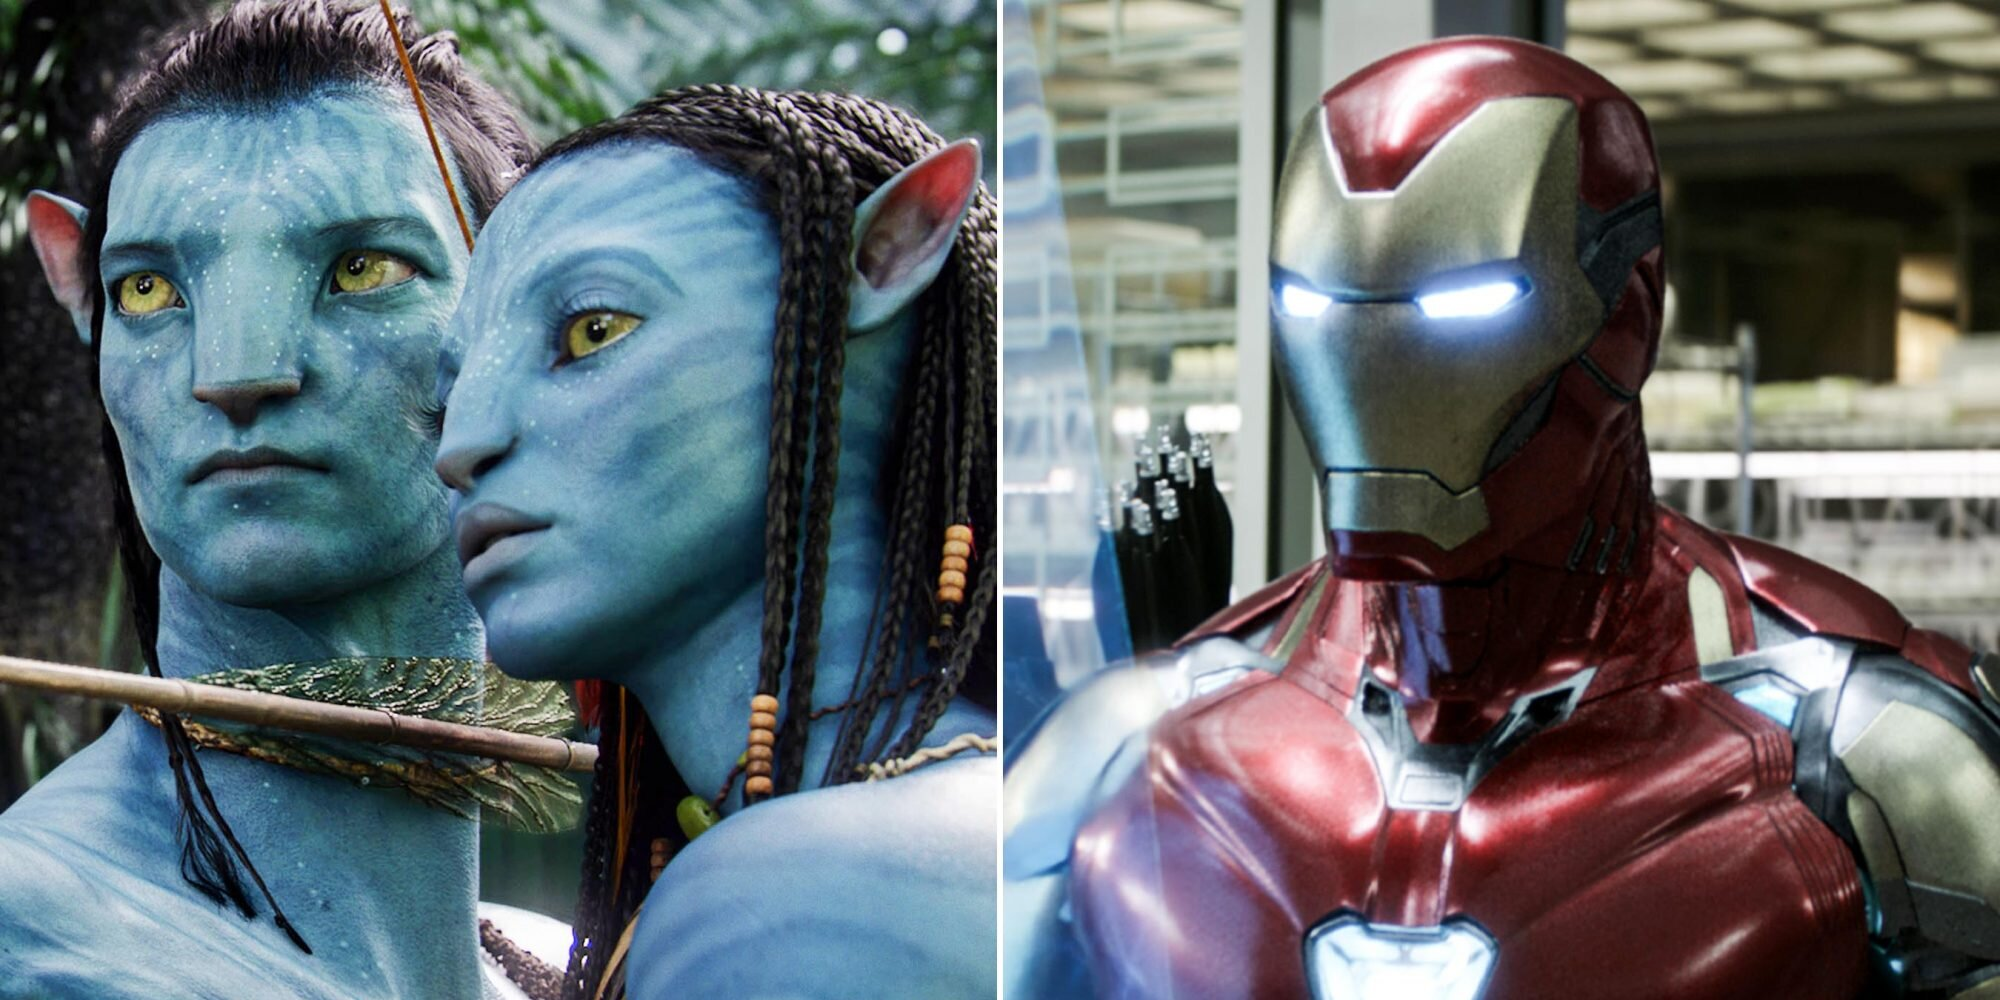 'Avatar' overtakes 'Avengers: Endgame' to once again become the top-grossing movie of all time – Entertainment Weekly